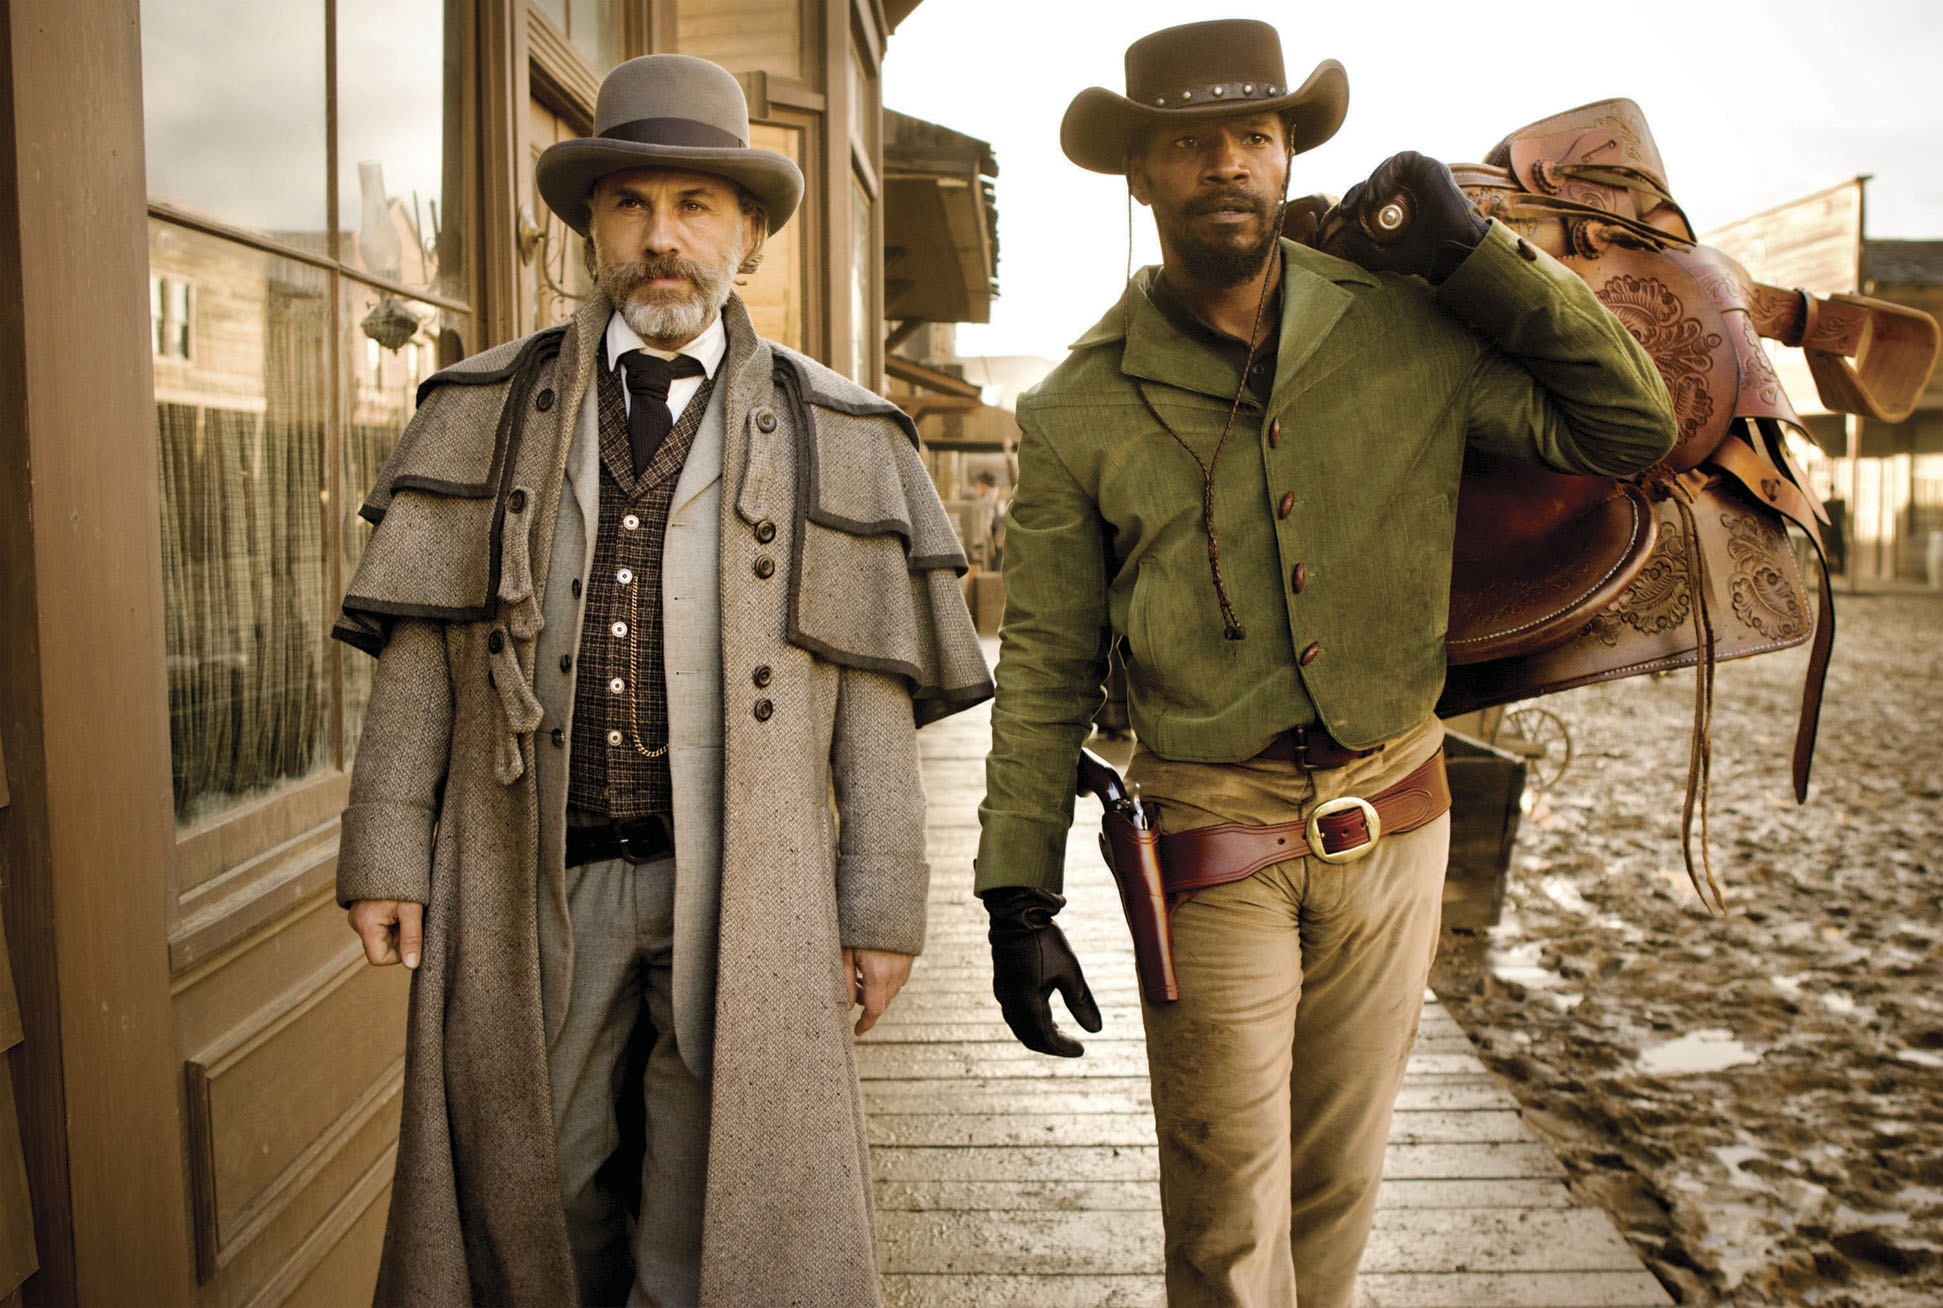 Inequity of slavery reaps vengeance in 'Django' | The ...